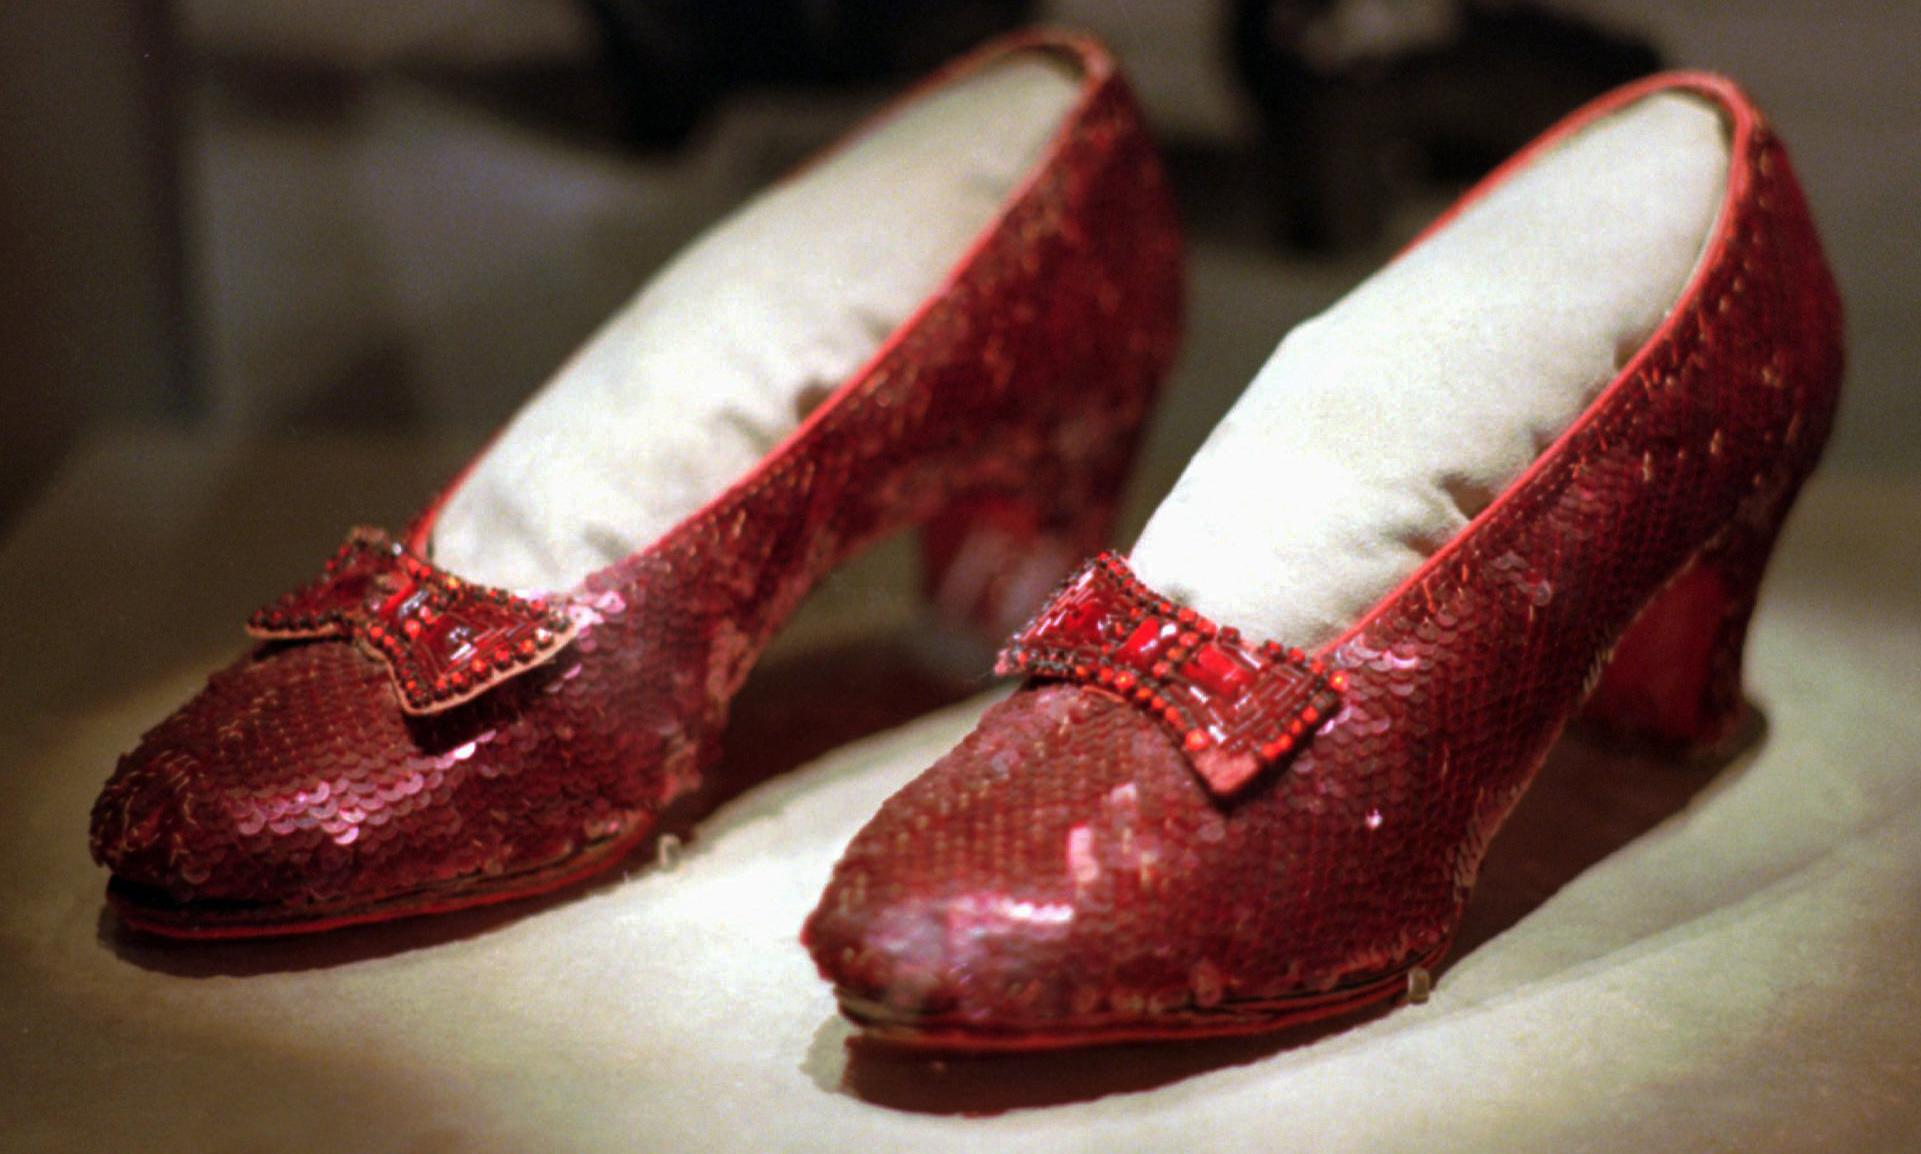 FBI finds stolen ruby slippers from Wizard of Oz after 13 years